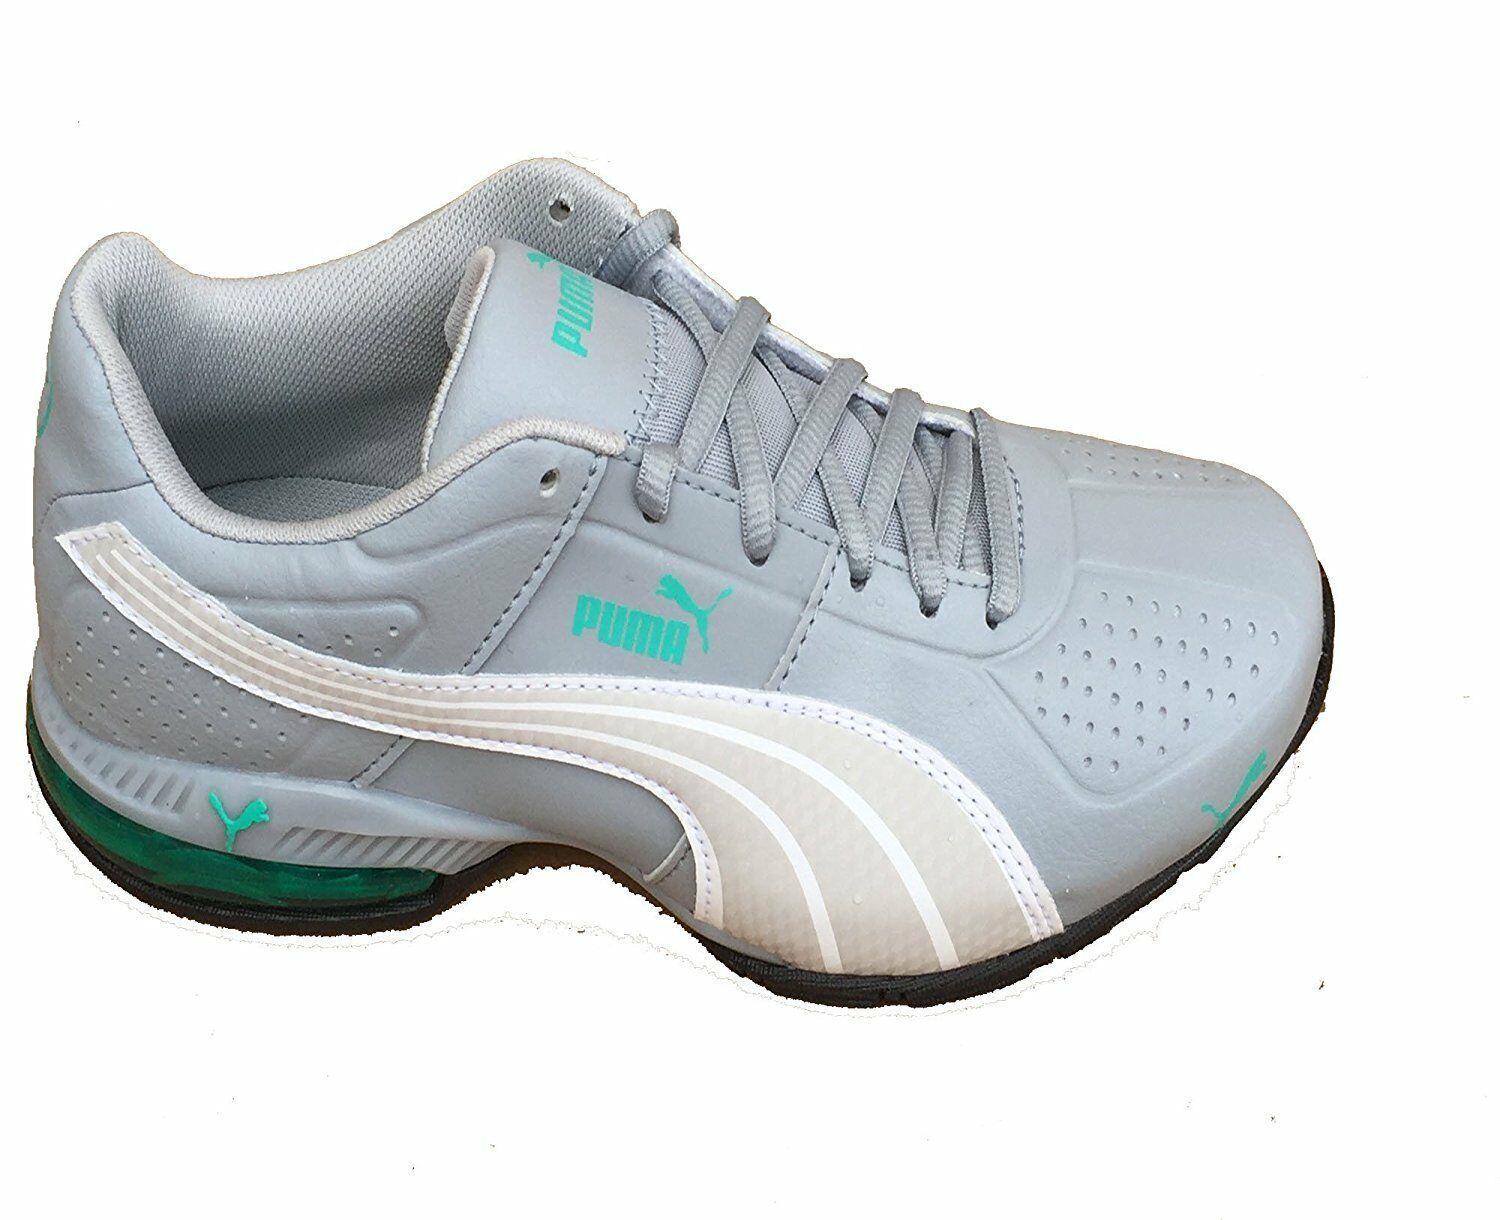 Puma Women's Cell Surin Quarry Gray White Pool Green Atheletic Sneakers (7)